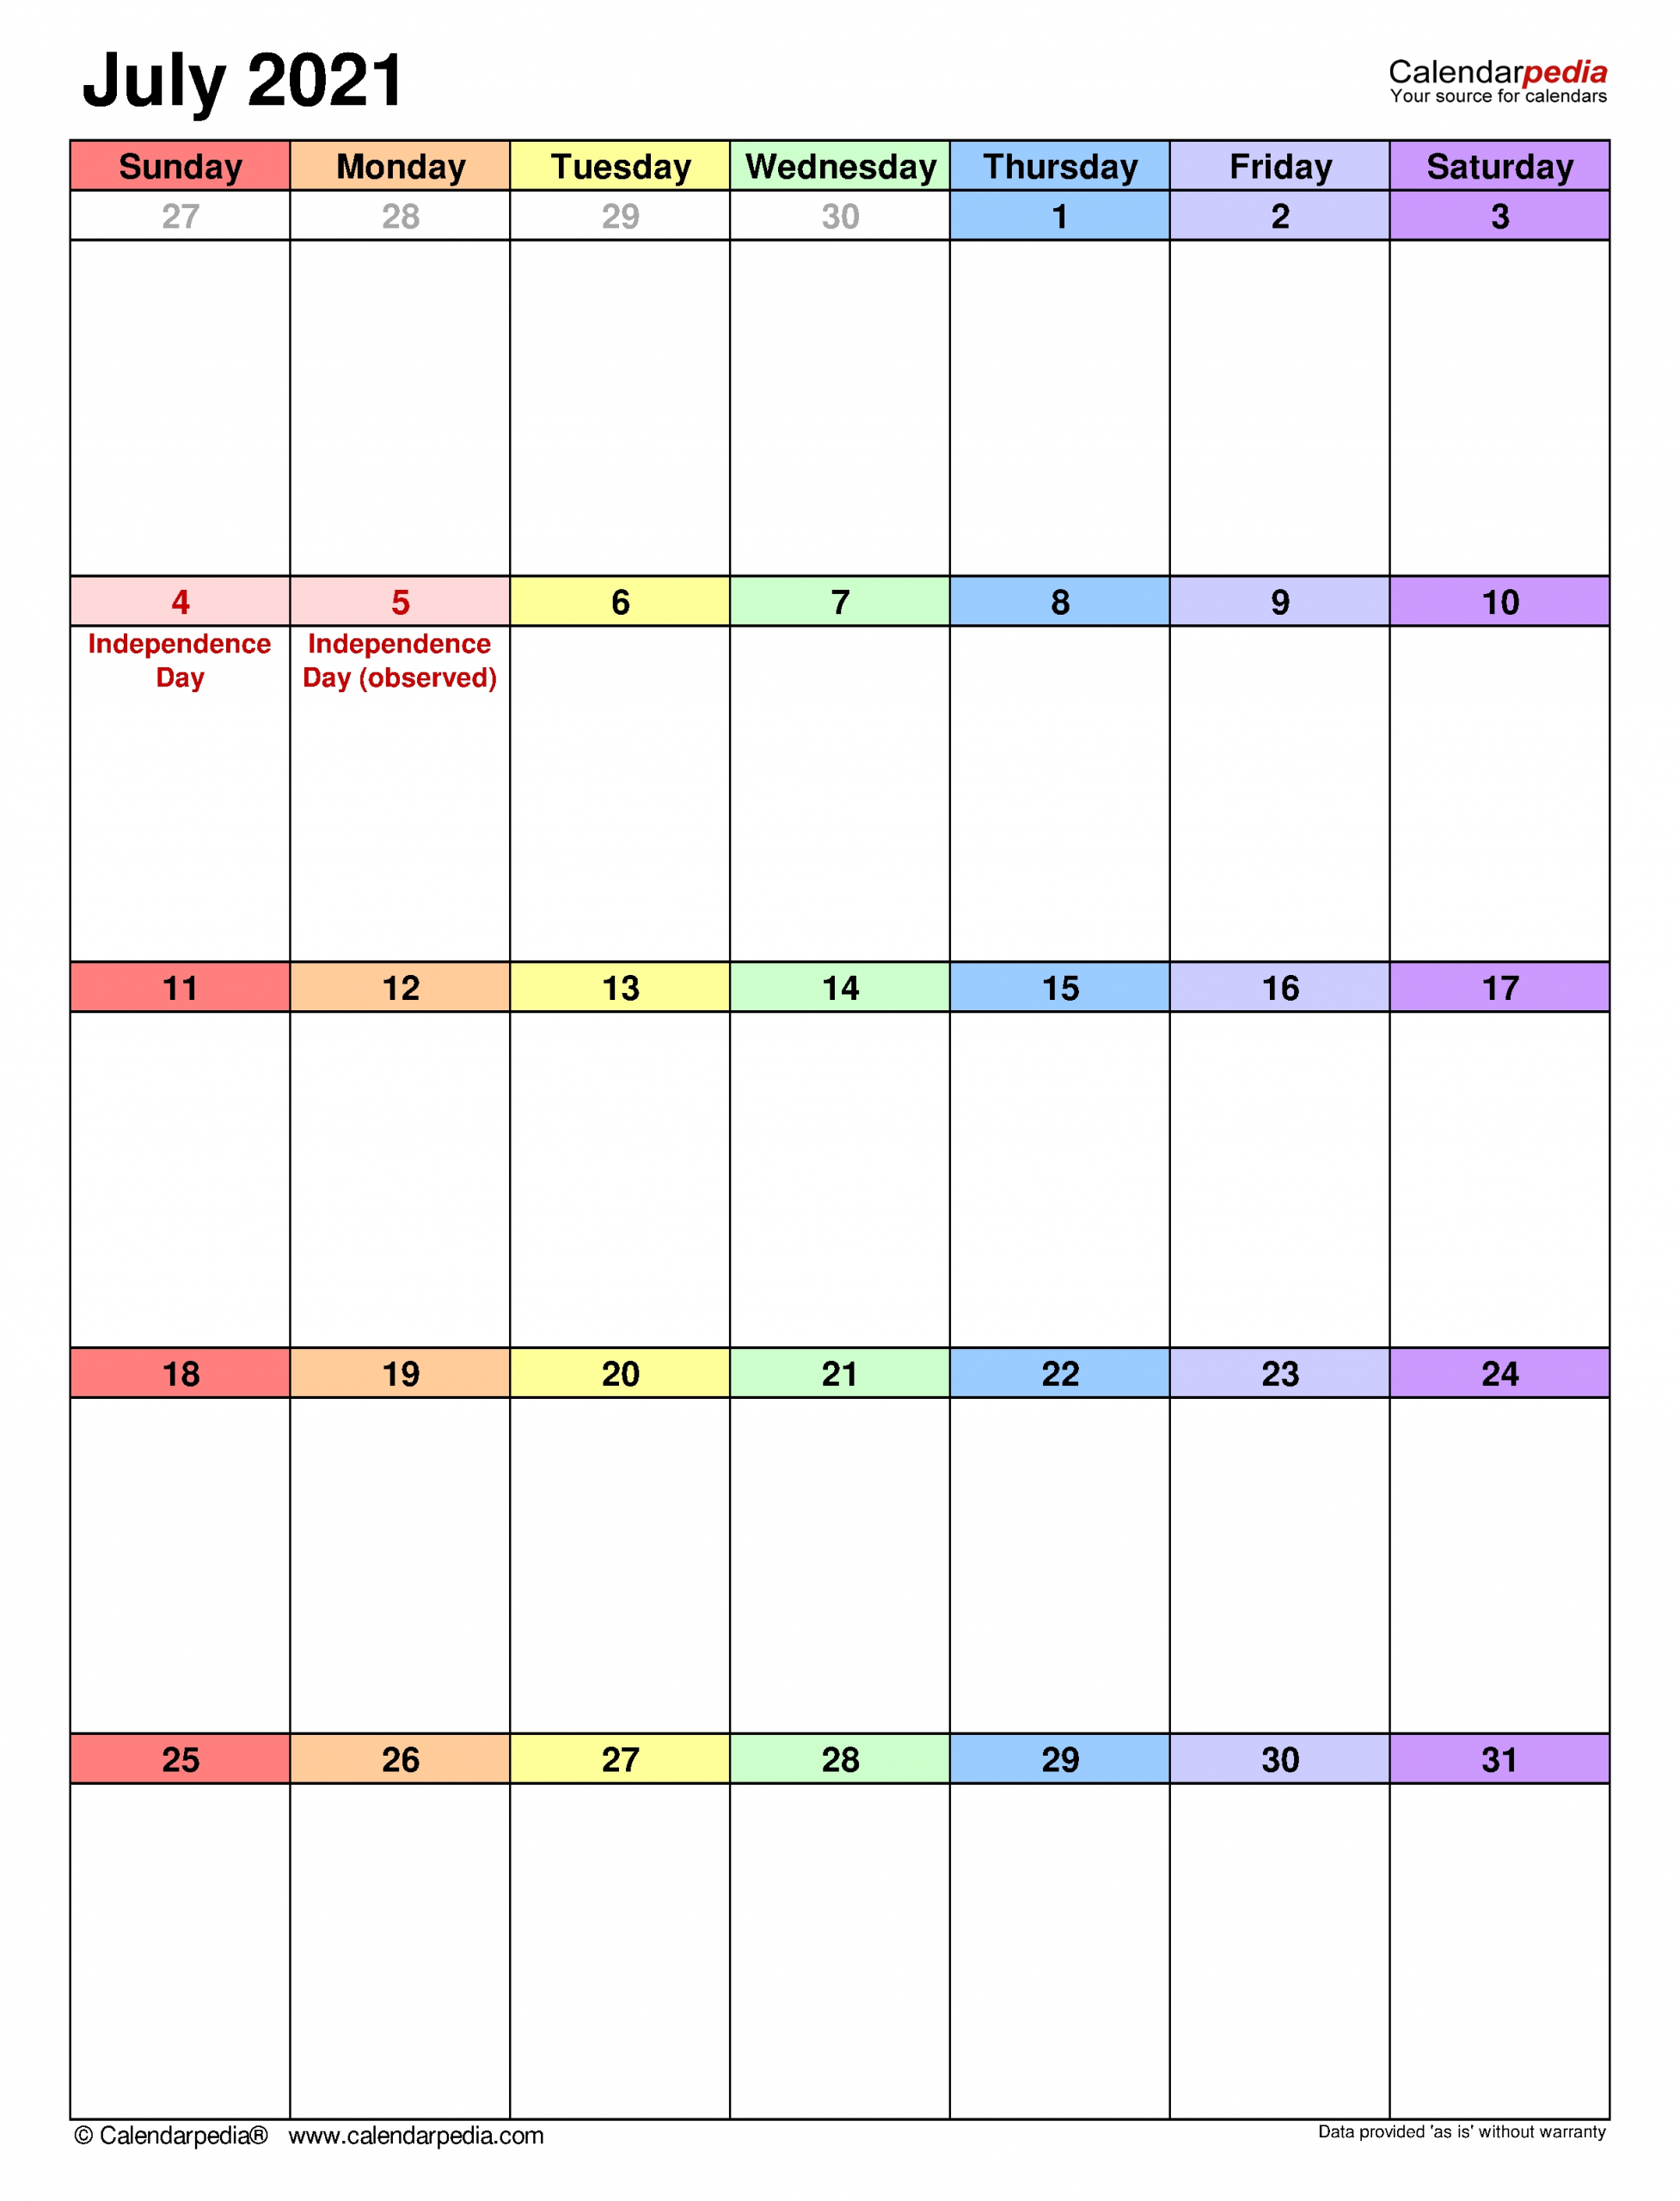 July 2021 Calendar | Templates For Word, Excel And Pdf